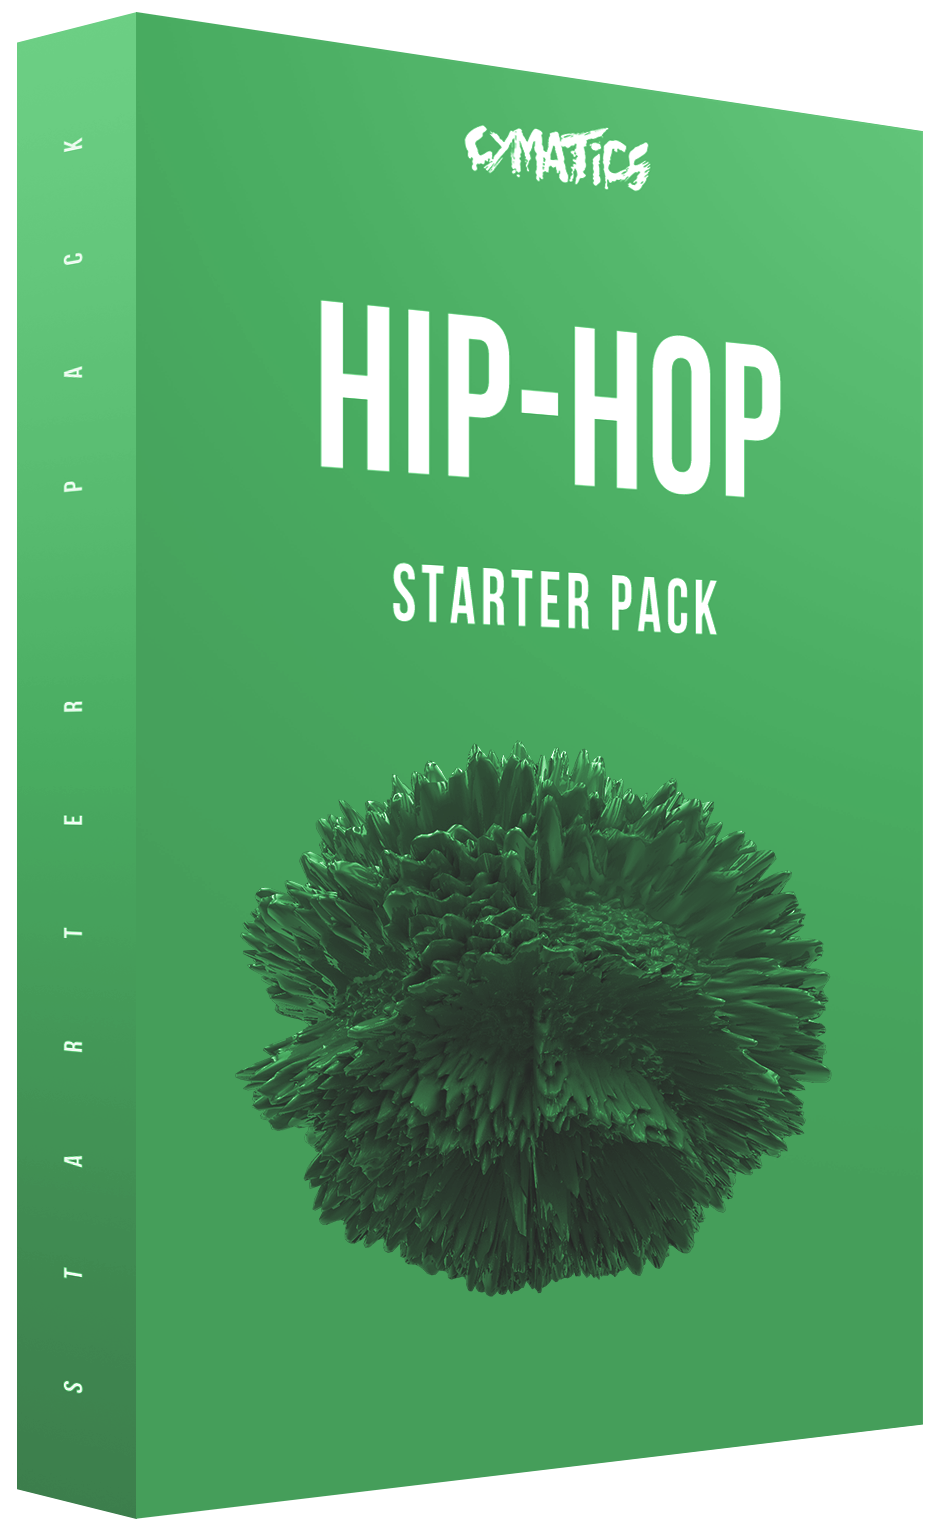 Free Download - Hip Hop Starter Pack – Cymatics fm